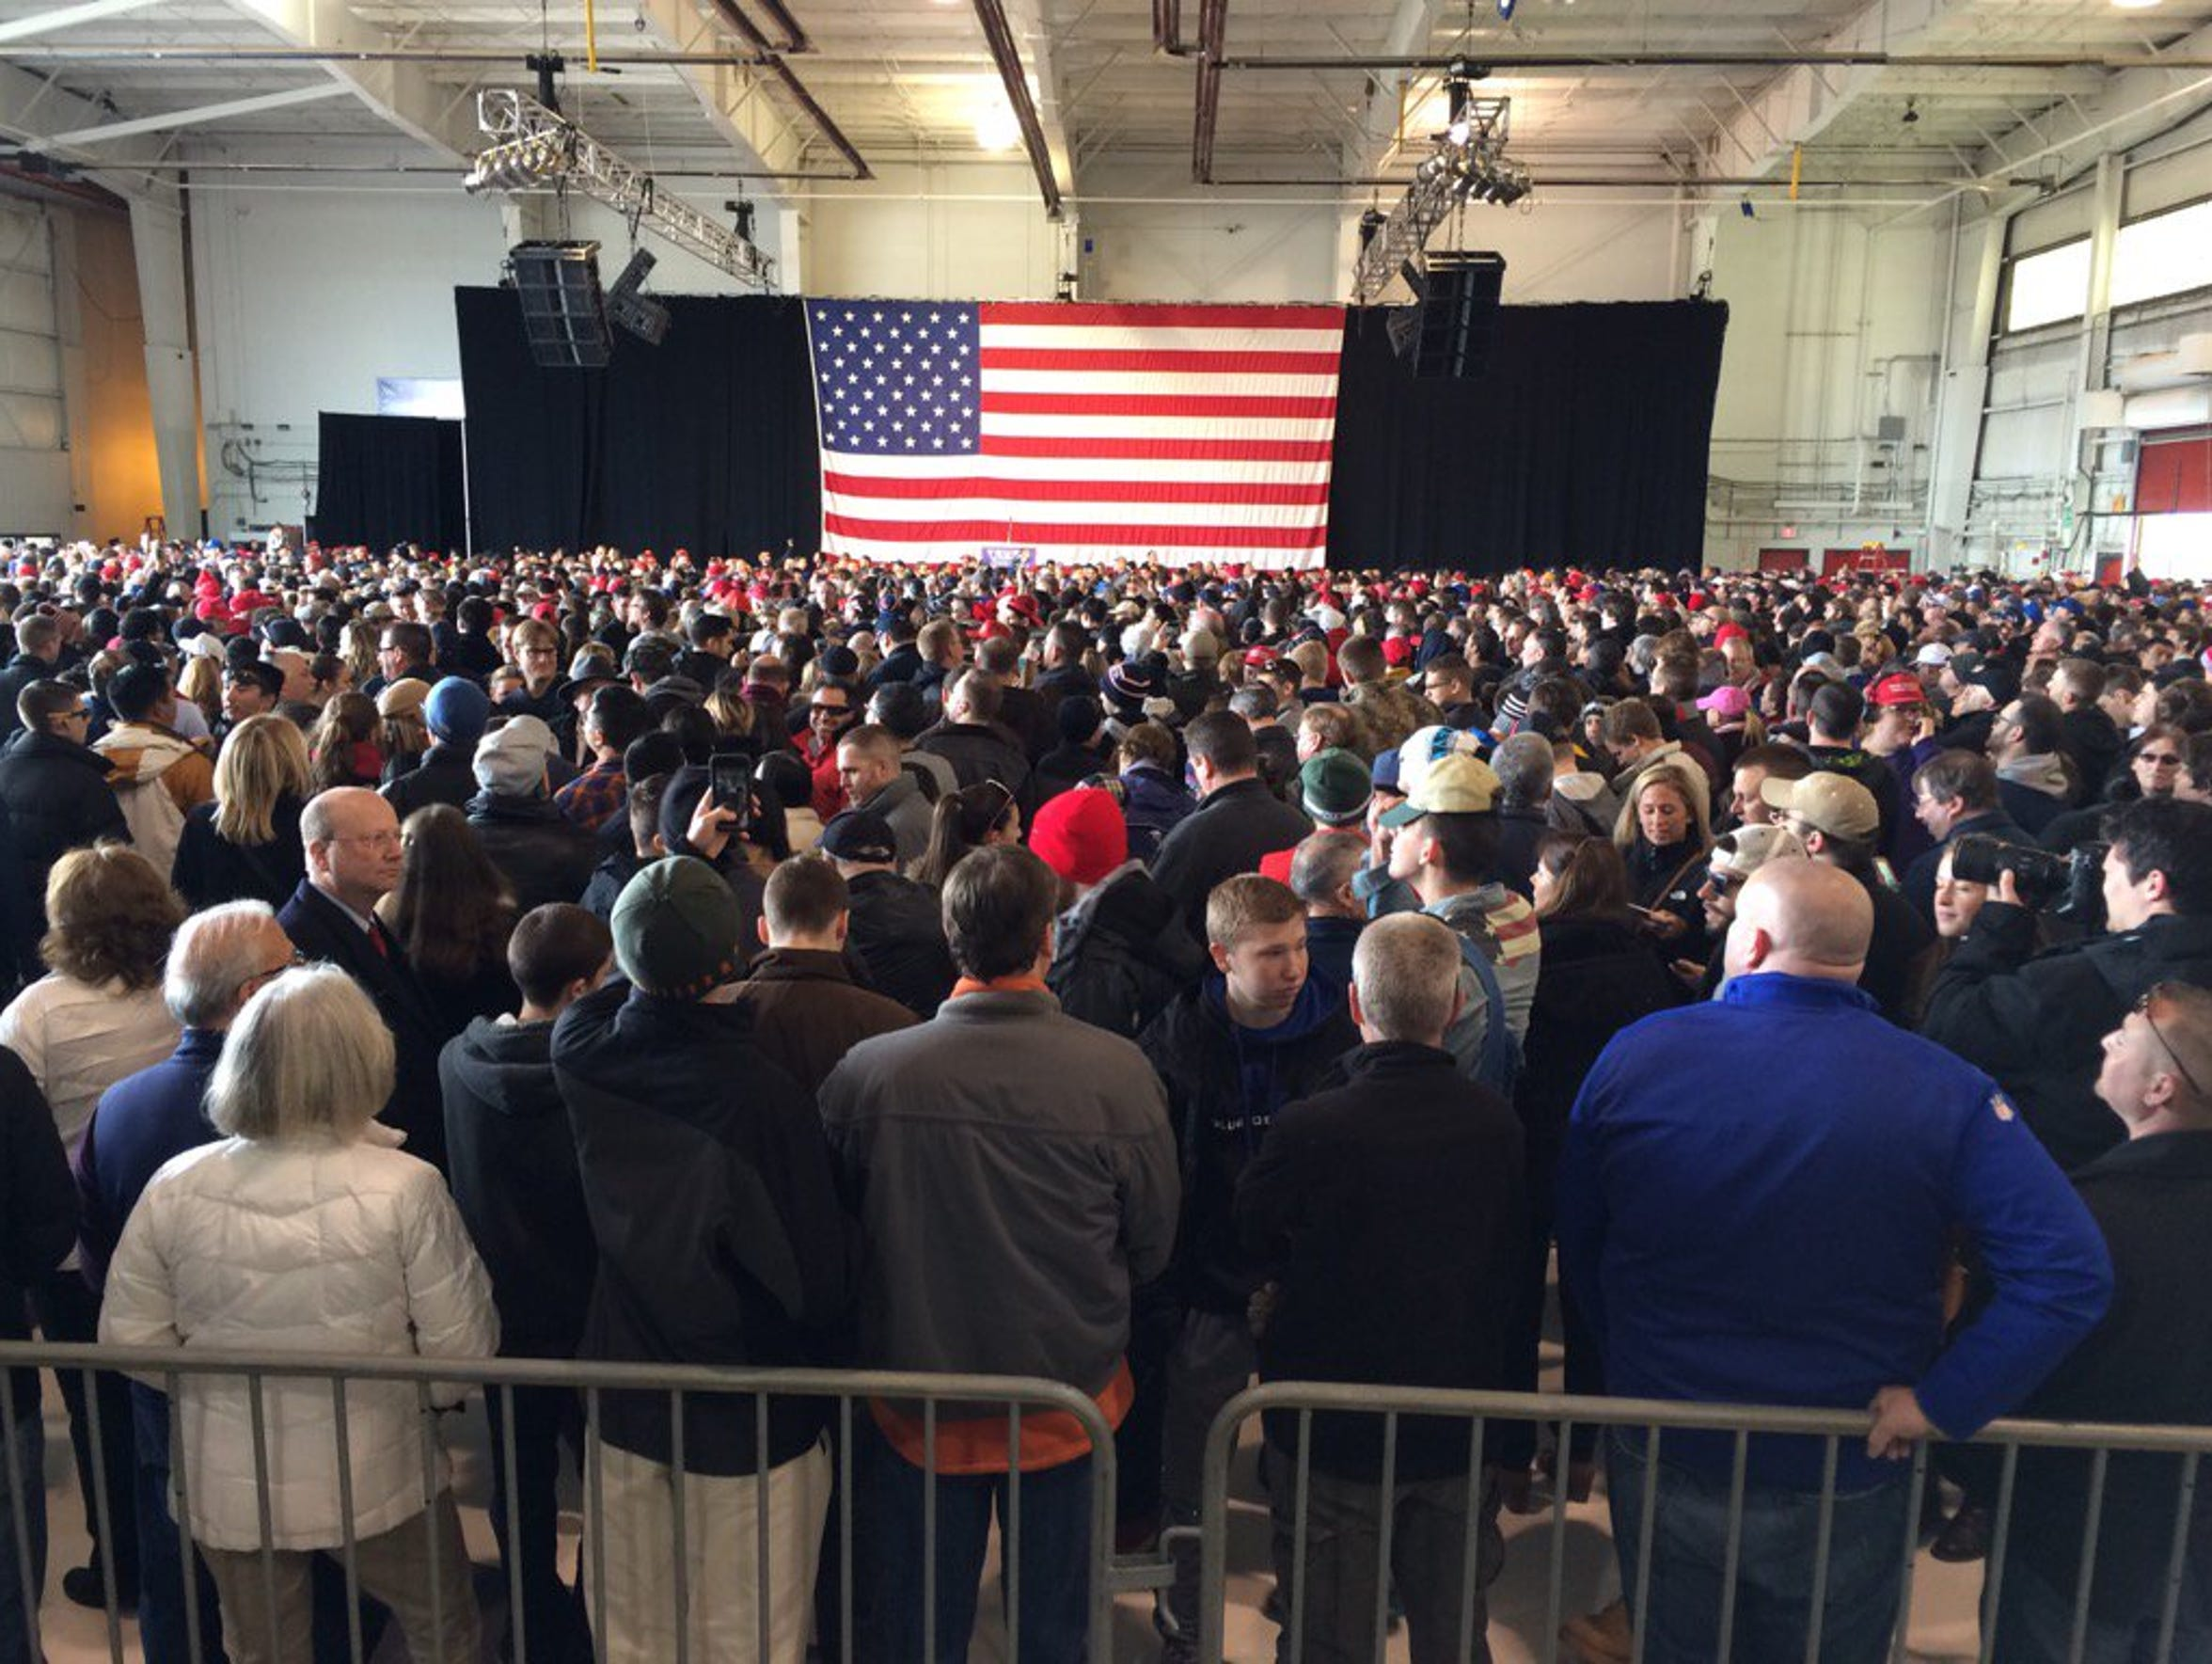 The crowd nears capacity an hour before Donald Trump's